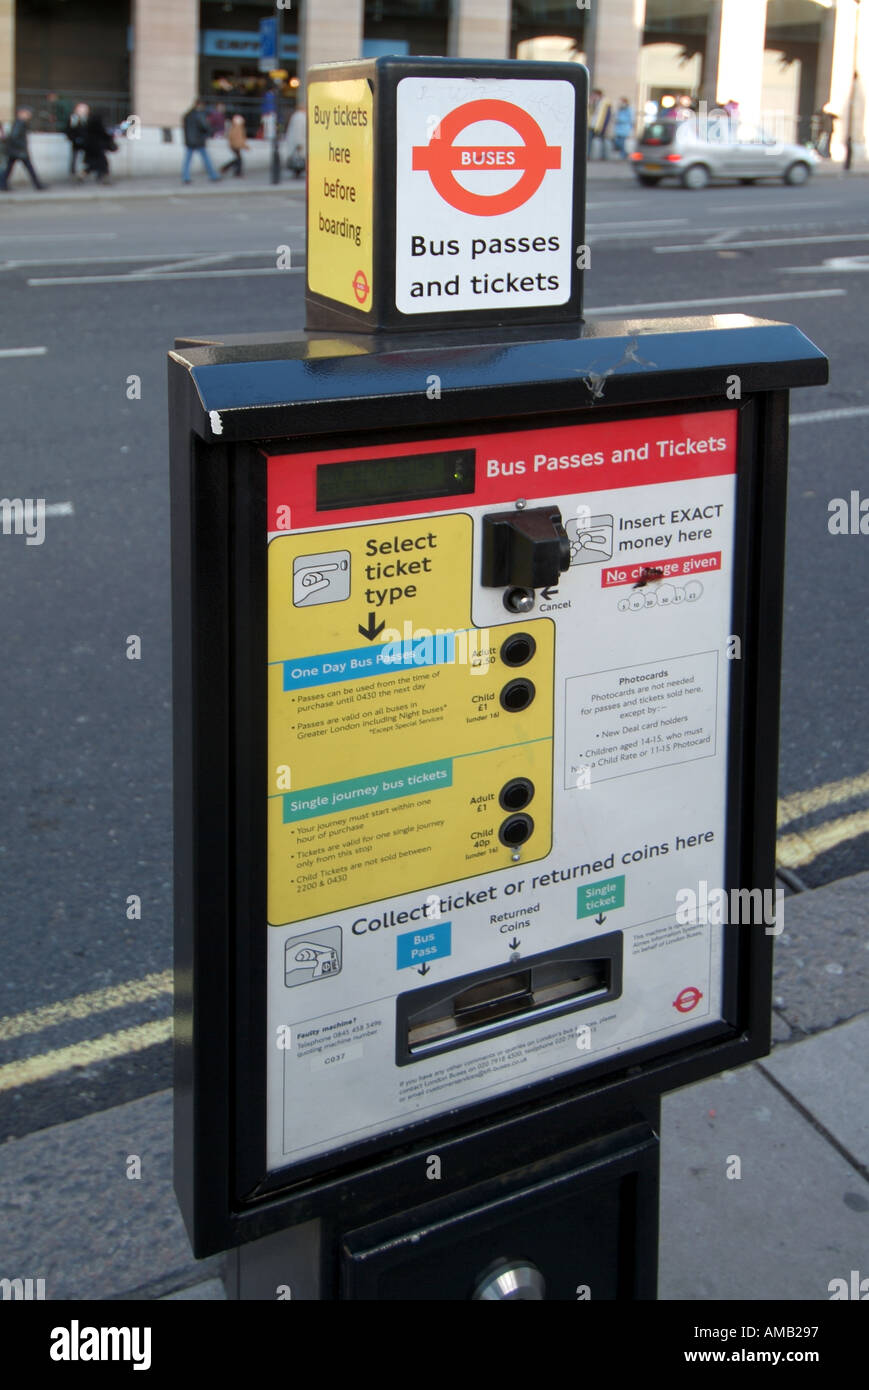 London pavement mounted pre payment machine to obtain ticket to travel on bus prior to boarding - Stock Image